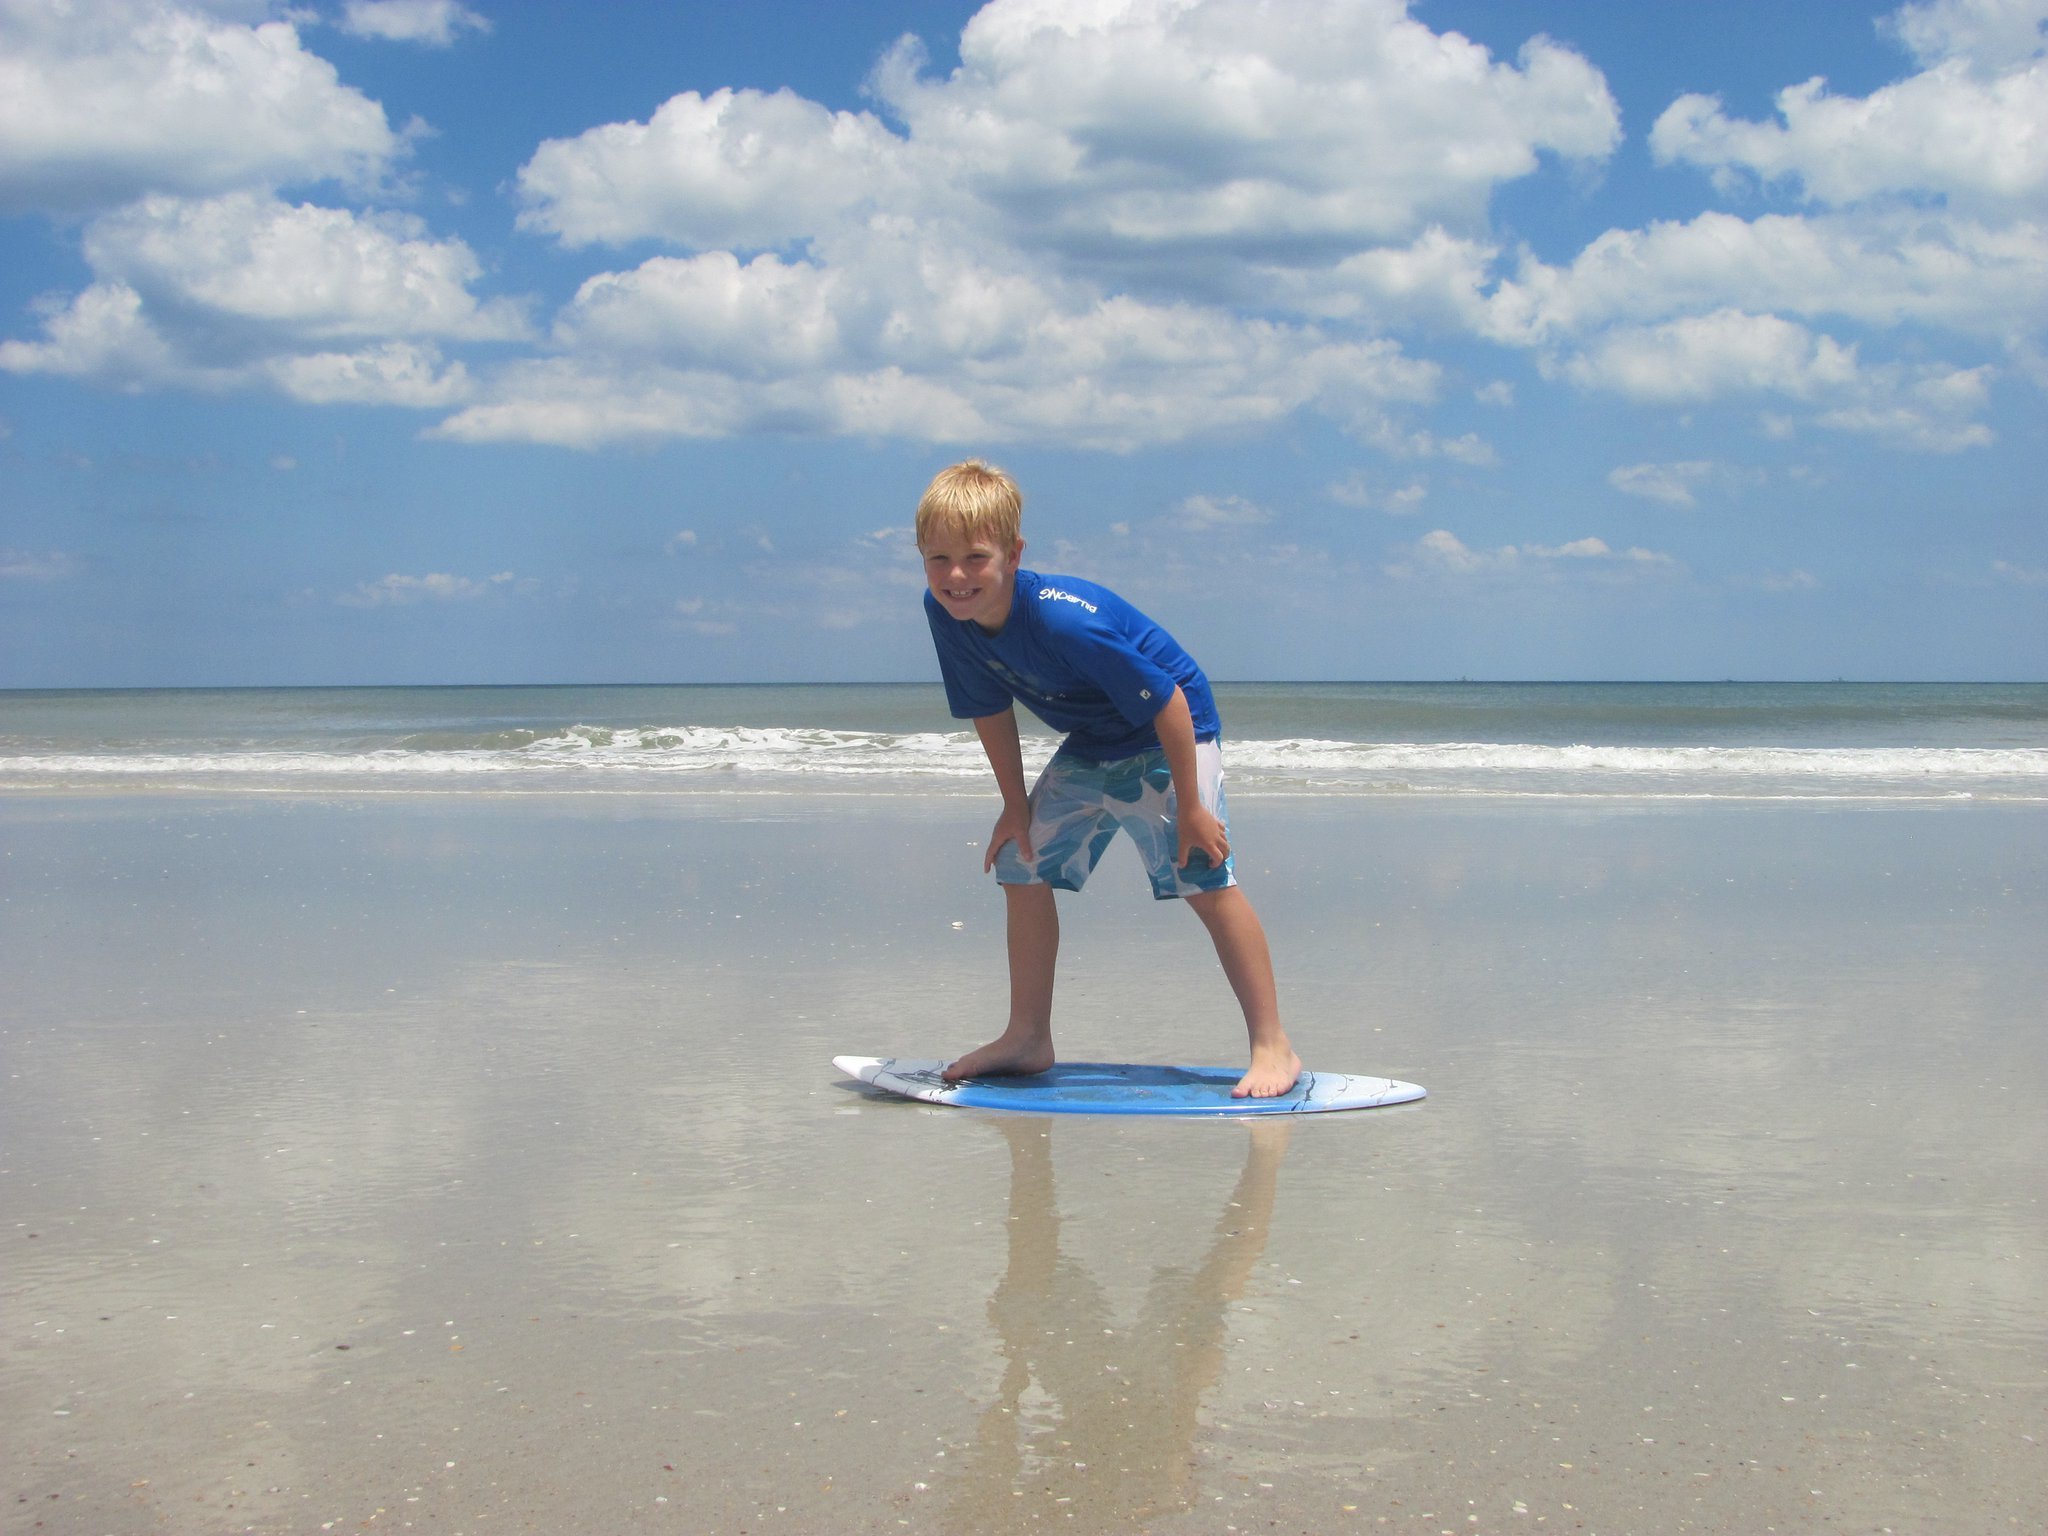 young boy standing on surfboard